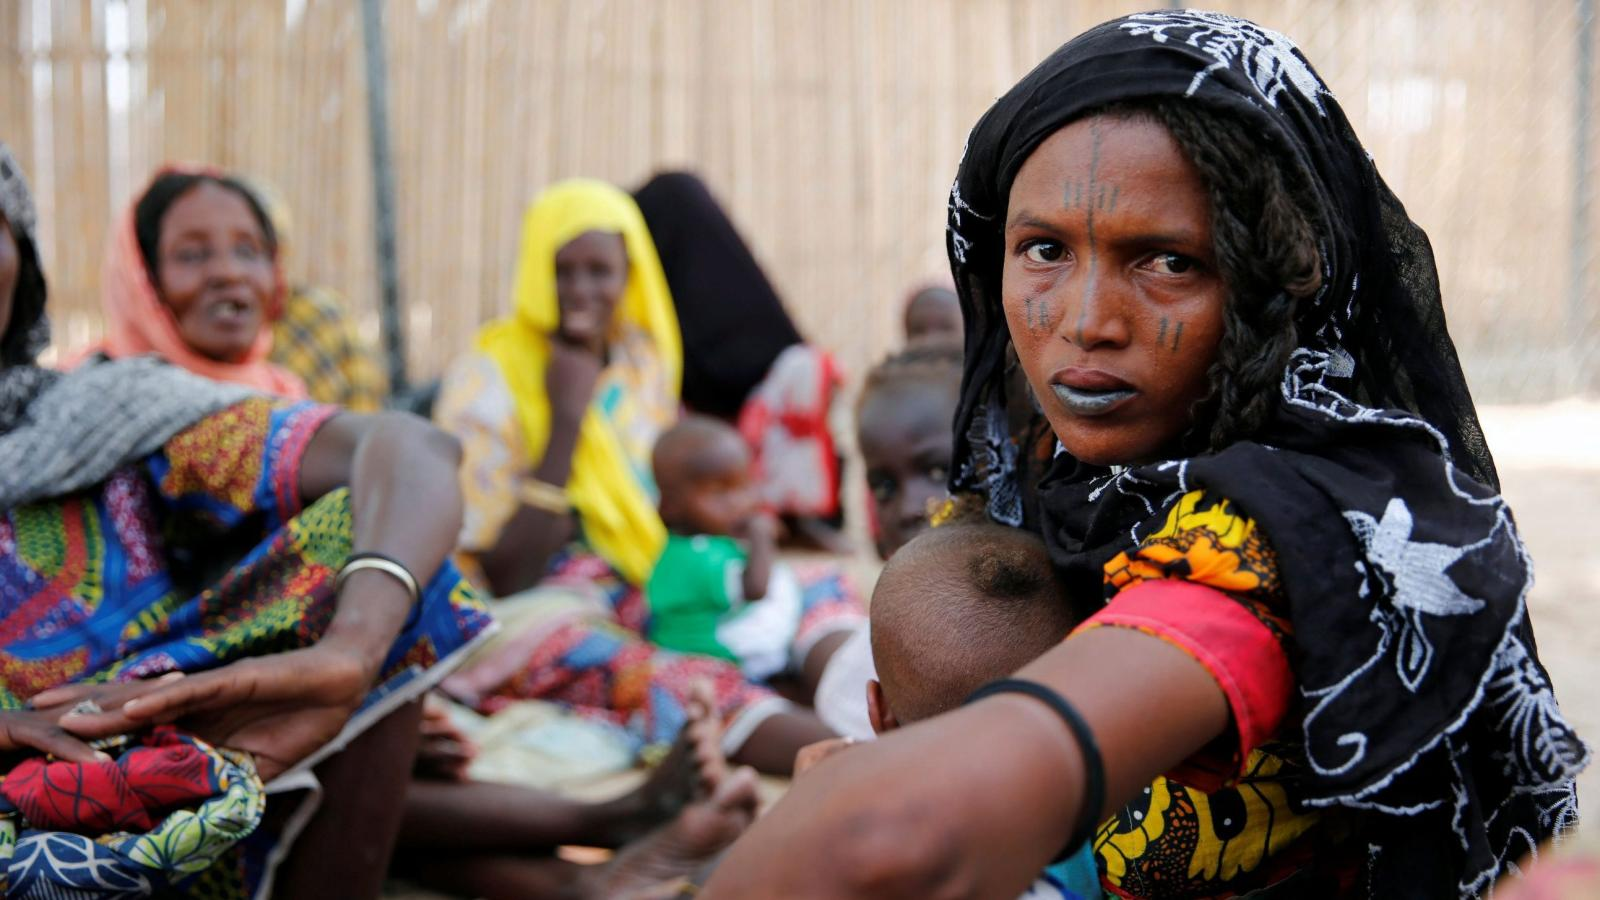 Nigeria's has the highest rate of extreme poverty globally